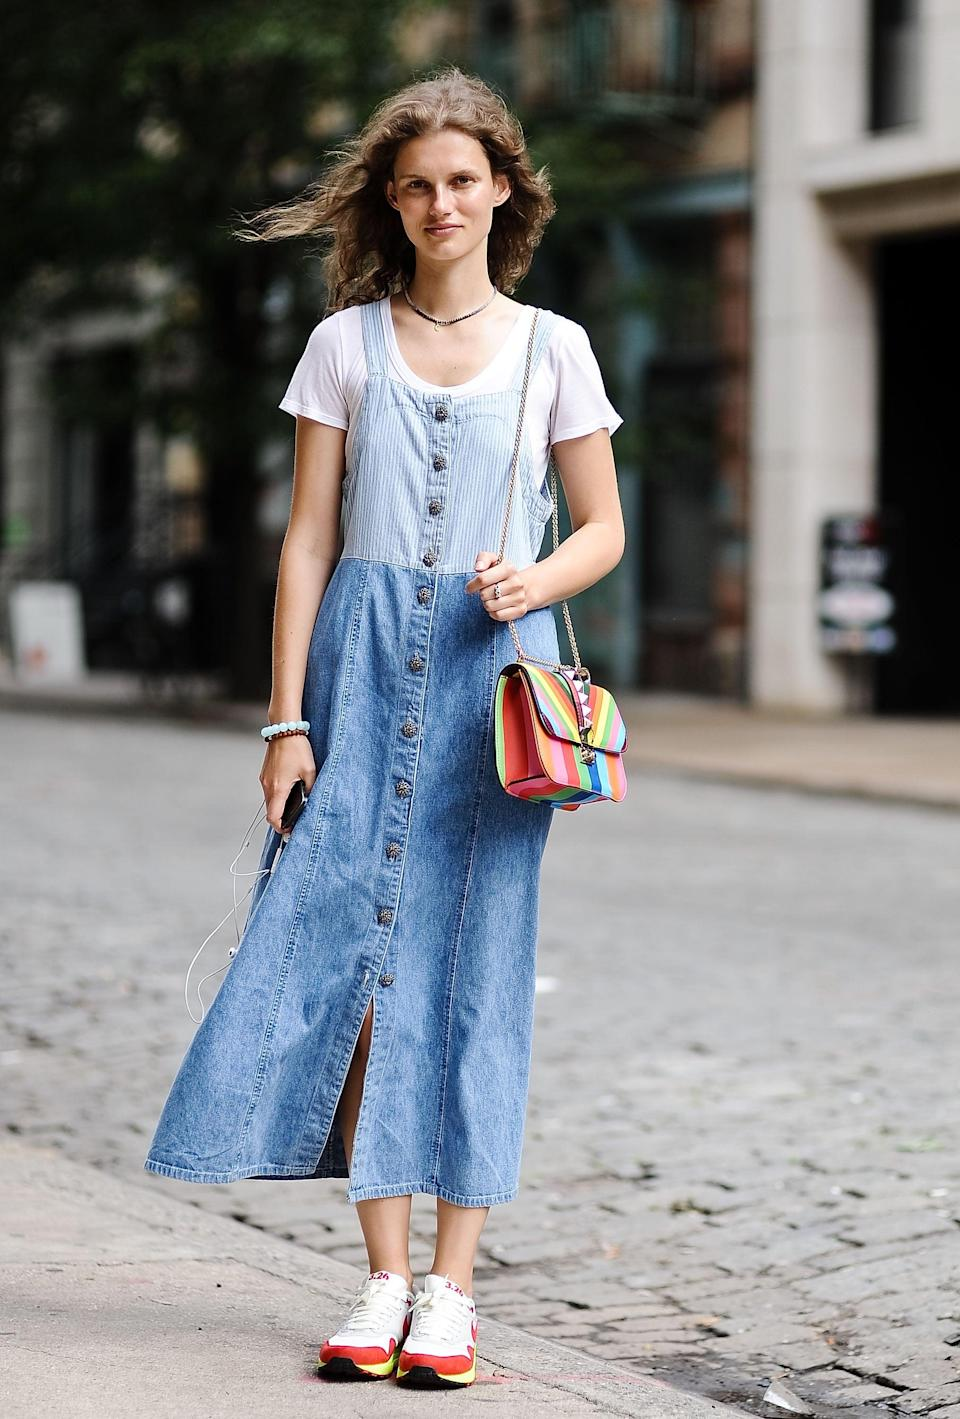 <p>Wearing head-to-toe denim looks extra cool when paired with colorful accessories.</p>